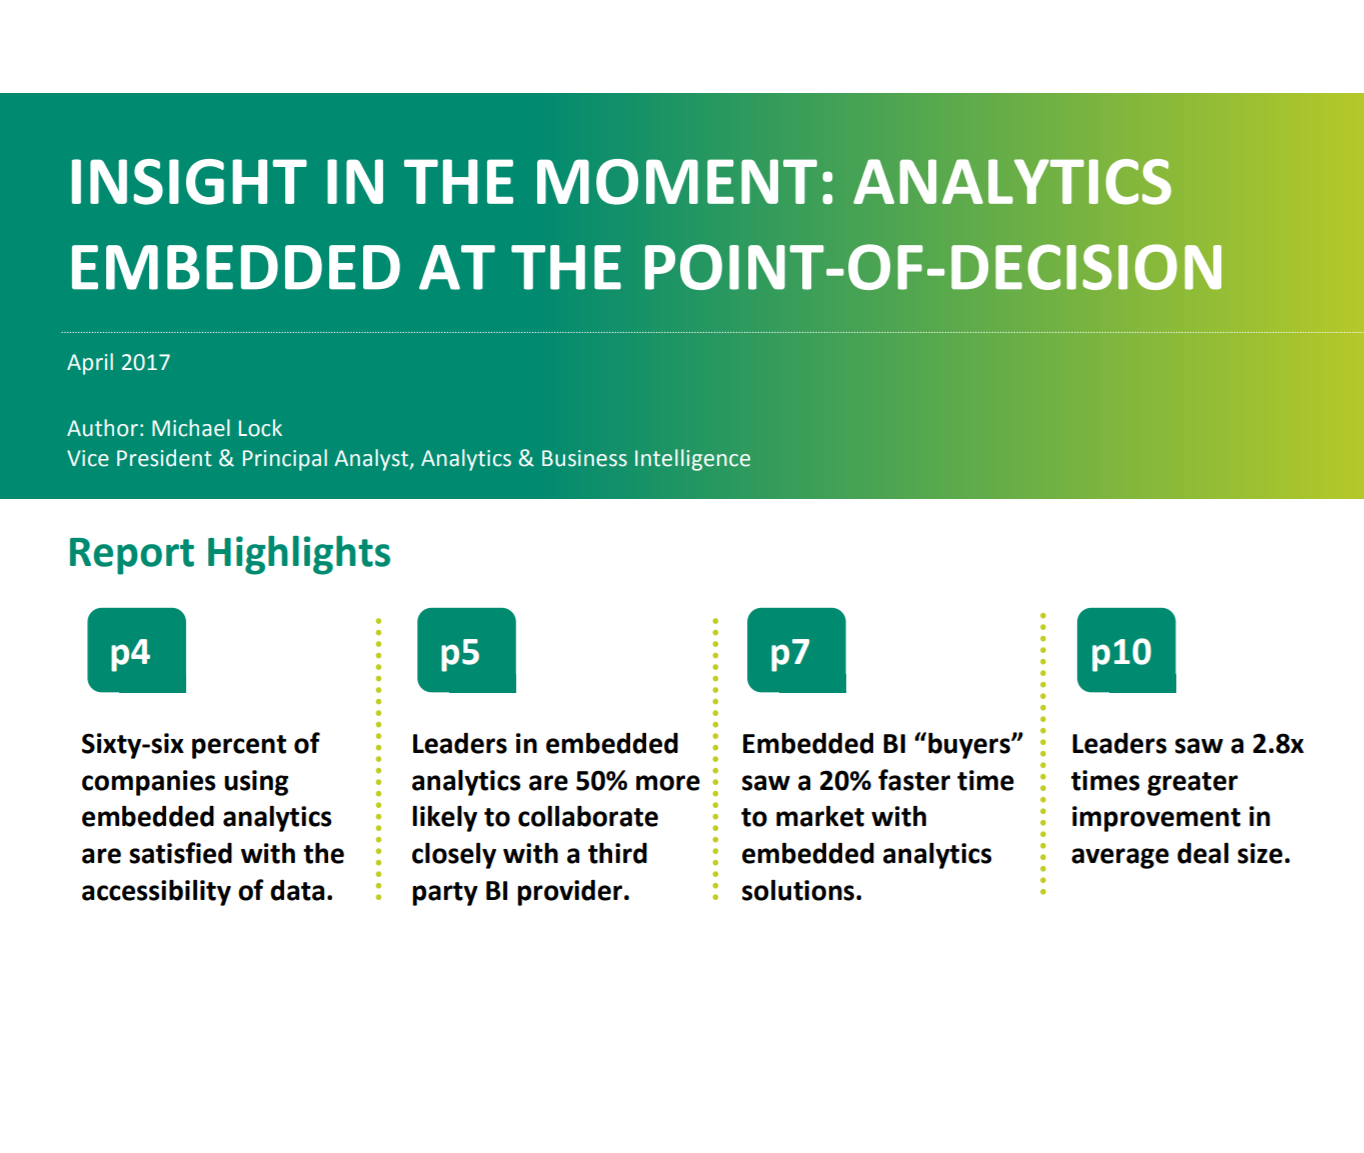 Analytics Embedded at the Point-Of-Decision